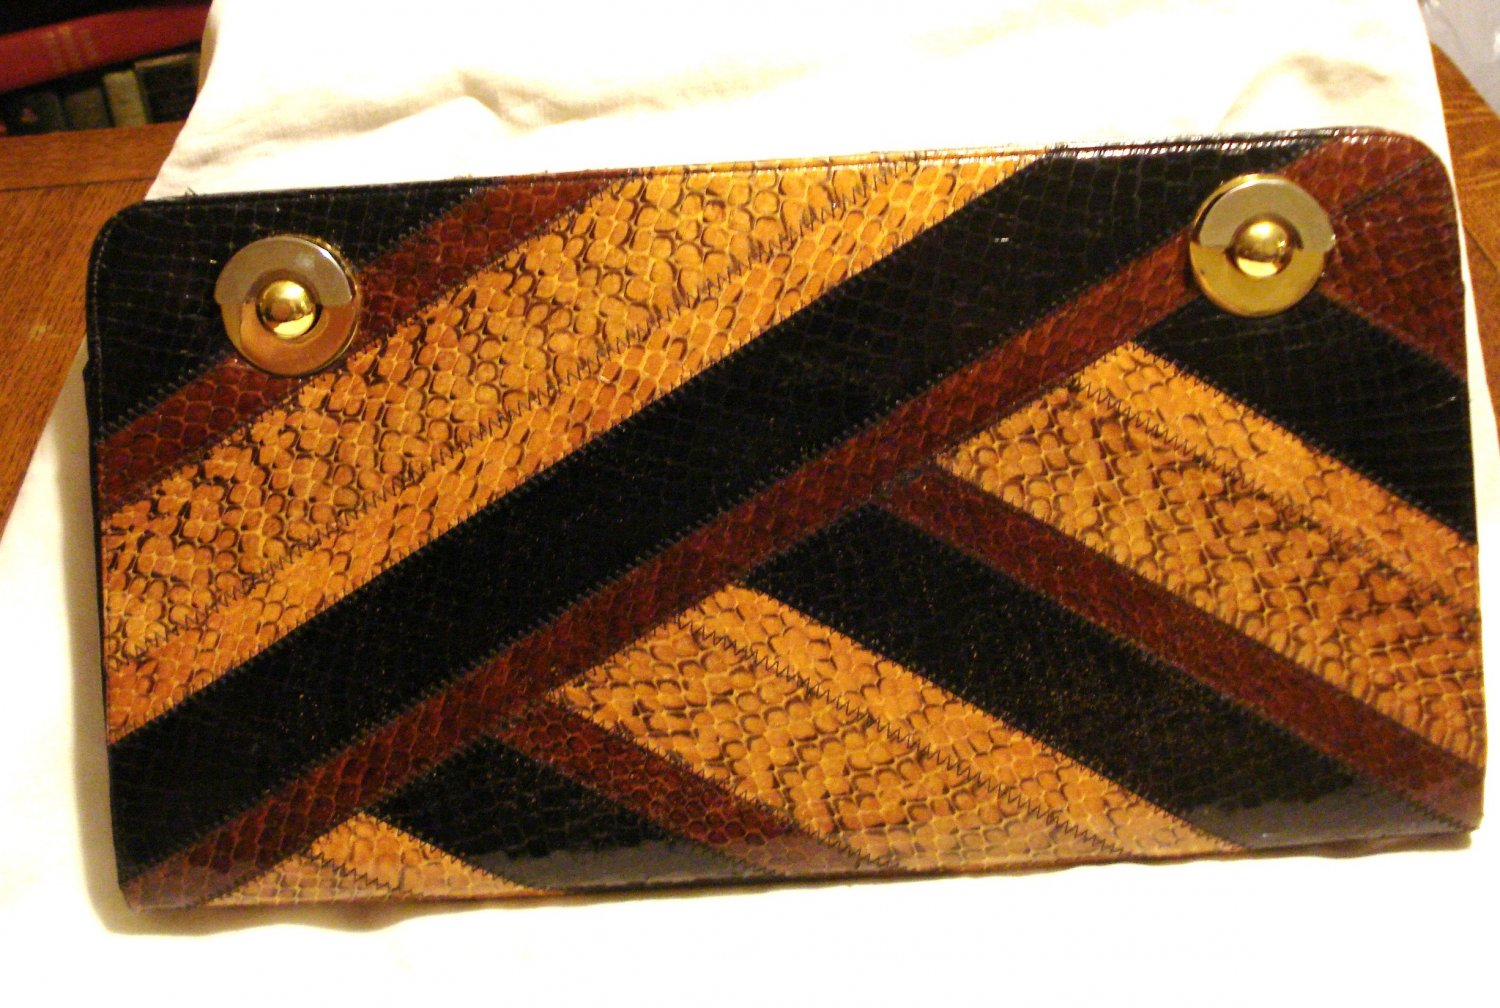 Melusso Italy snakeskin handbag large clutch with chain tan to black 1940s amazing vintage  ll3152